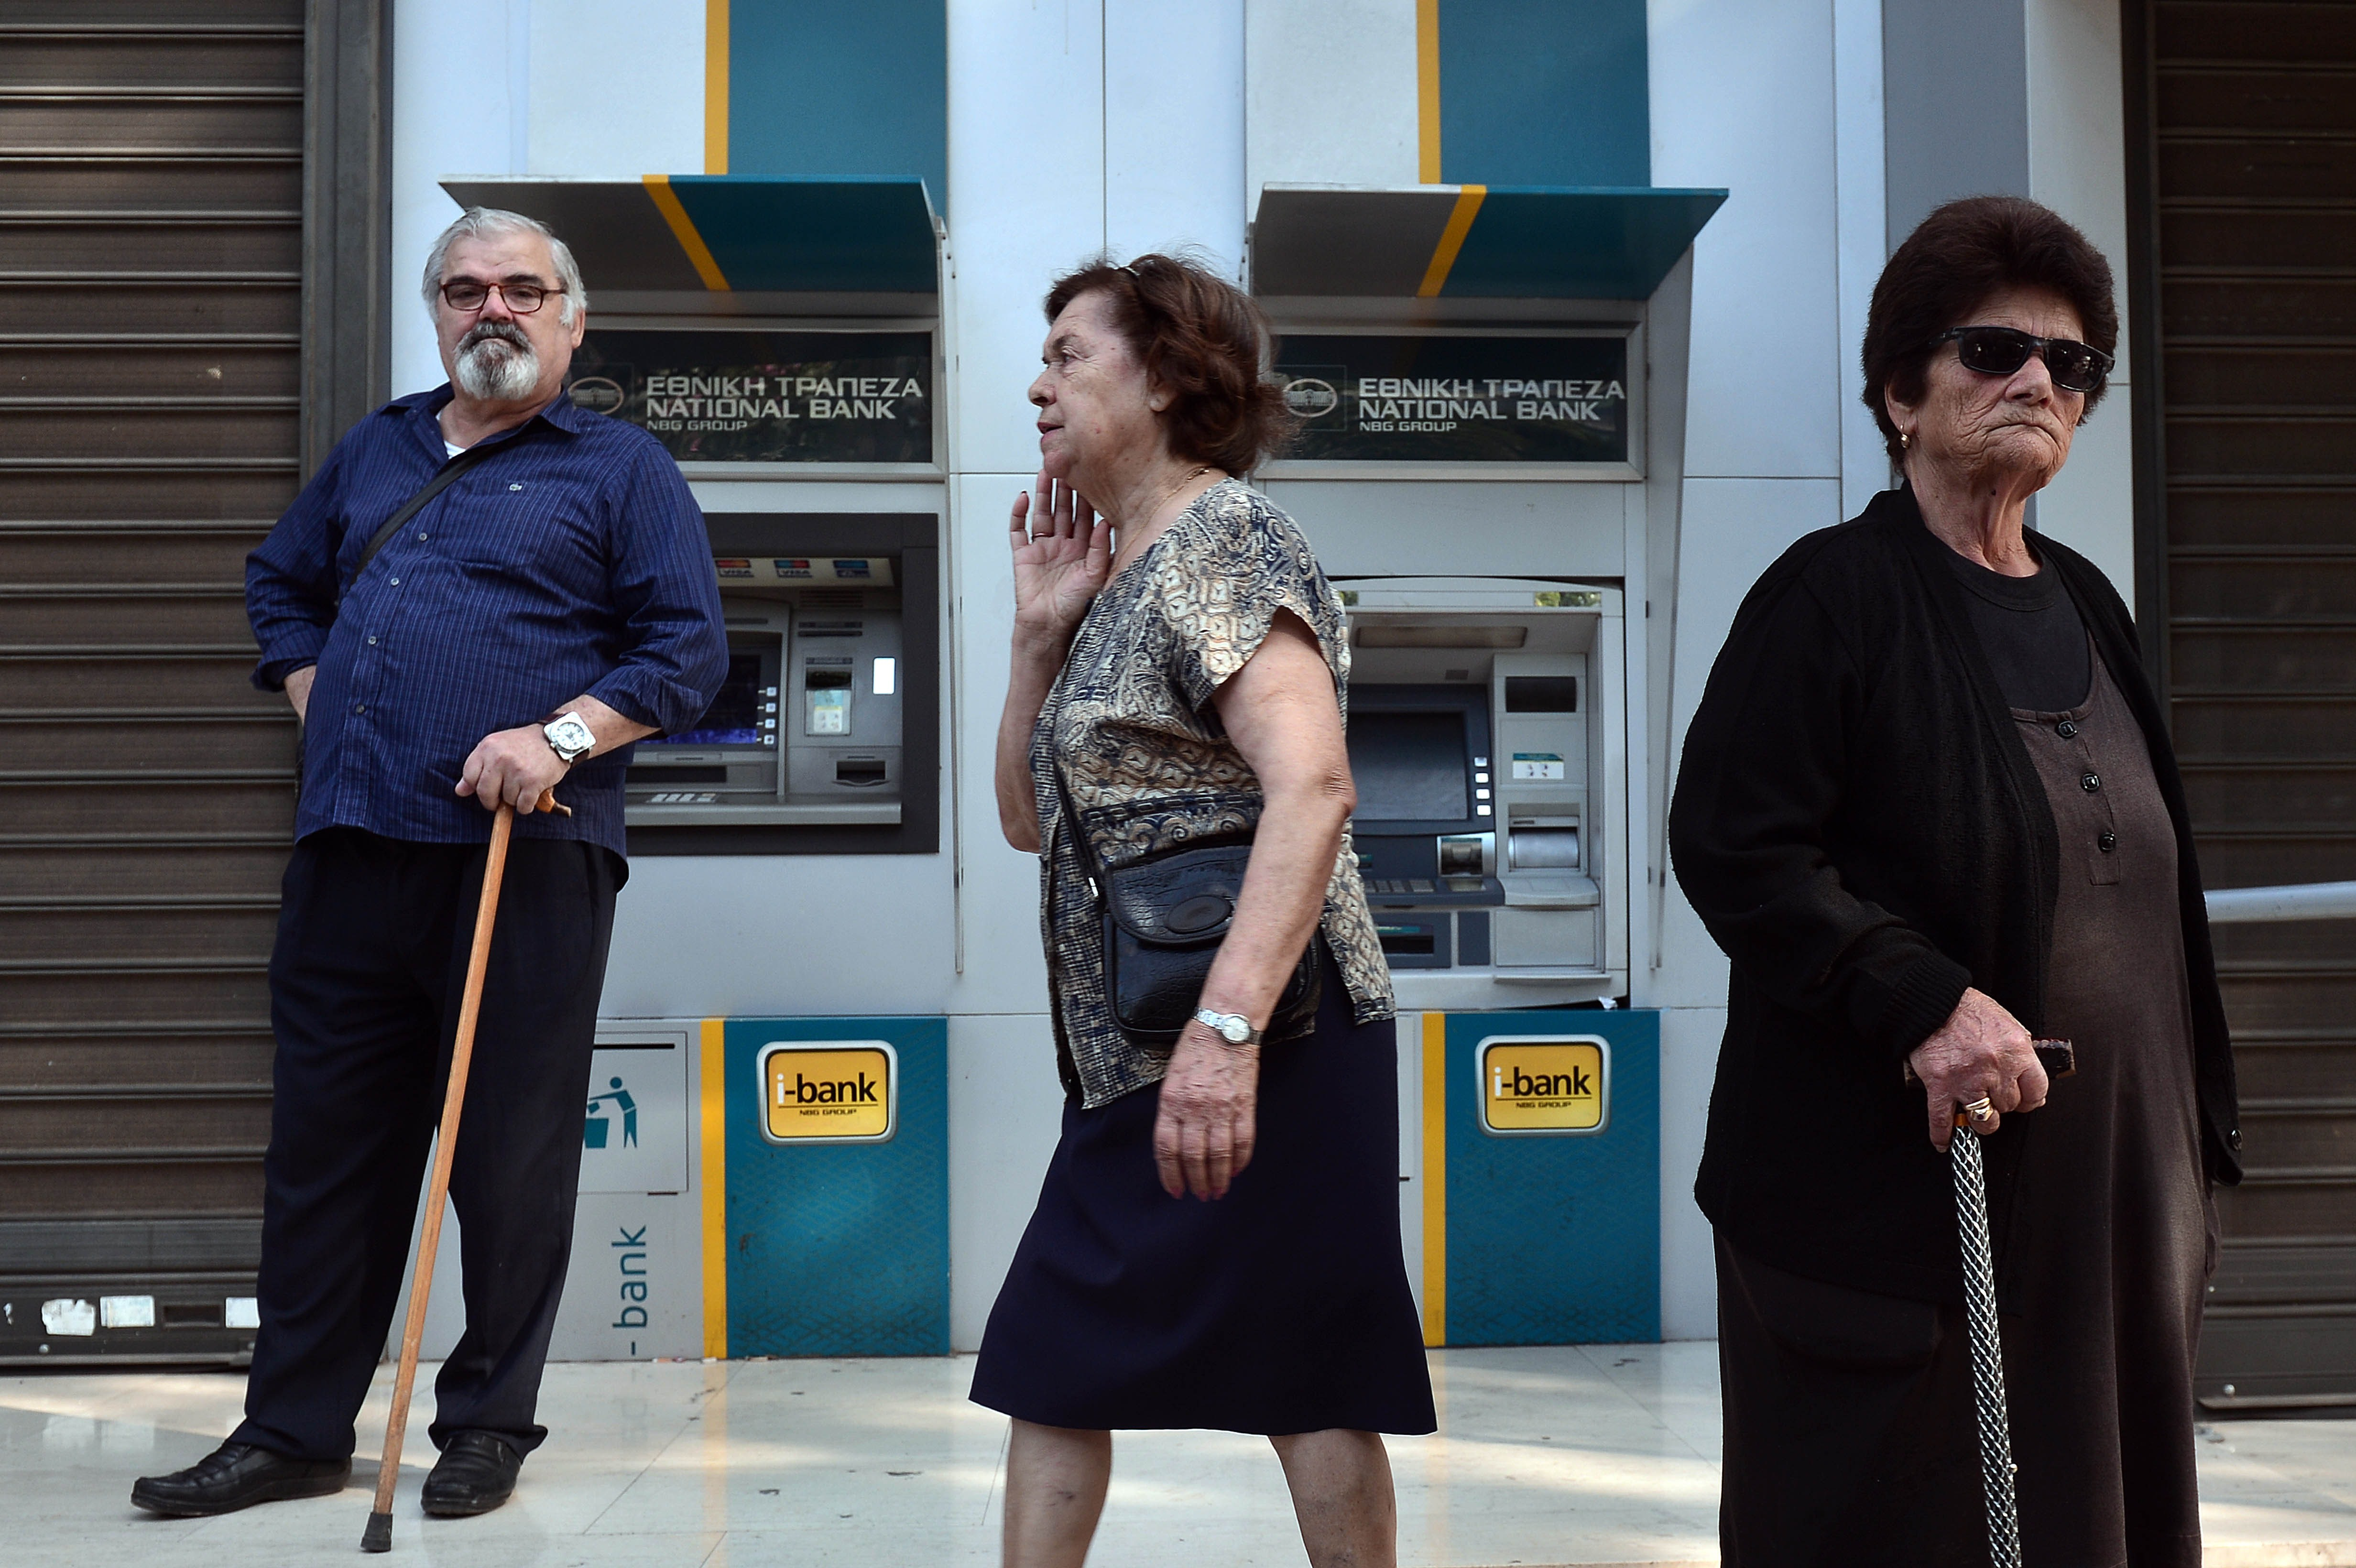 People stand by Greece national bank's empty ATM's in central Athens on June 29, 2015 as Greece ordered its banks to shut for